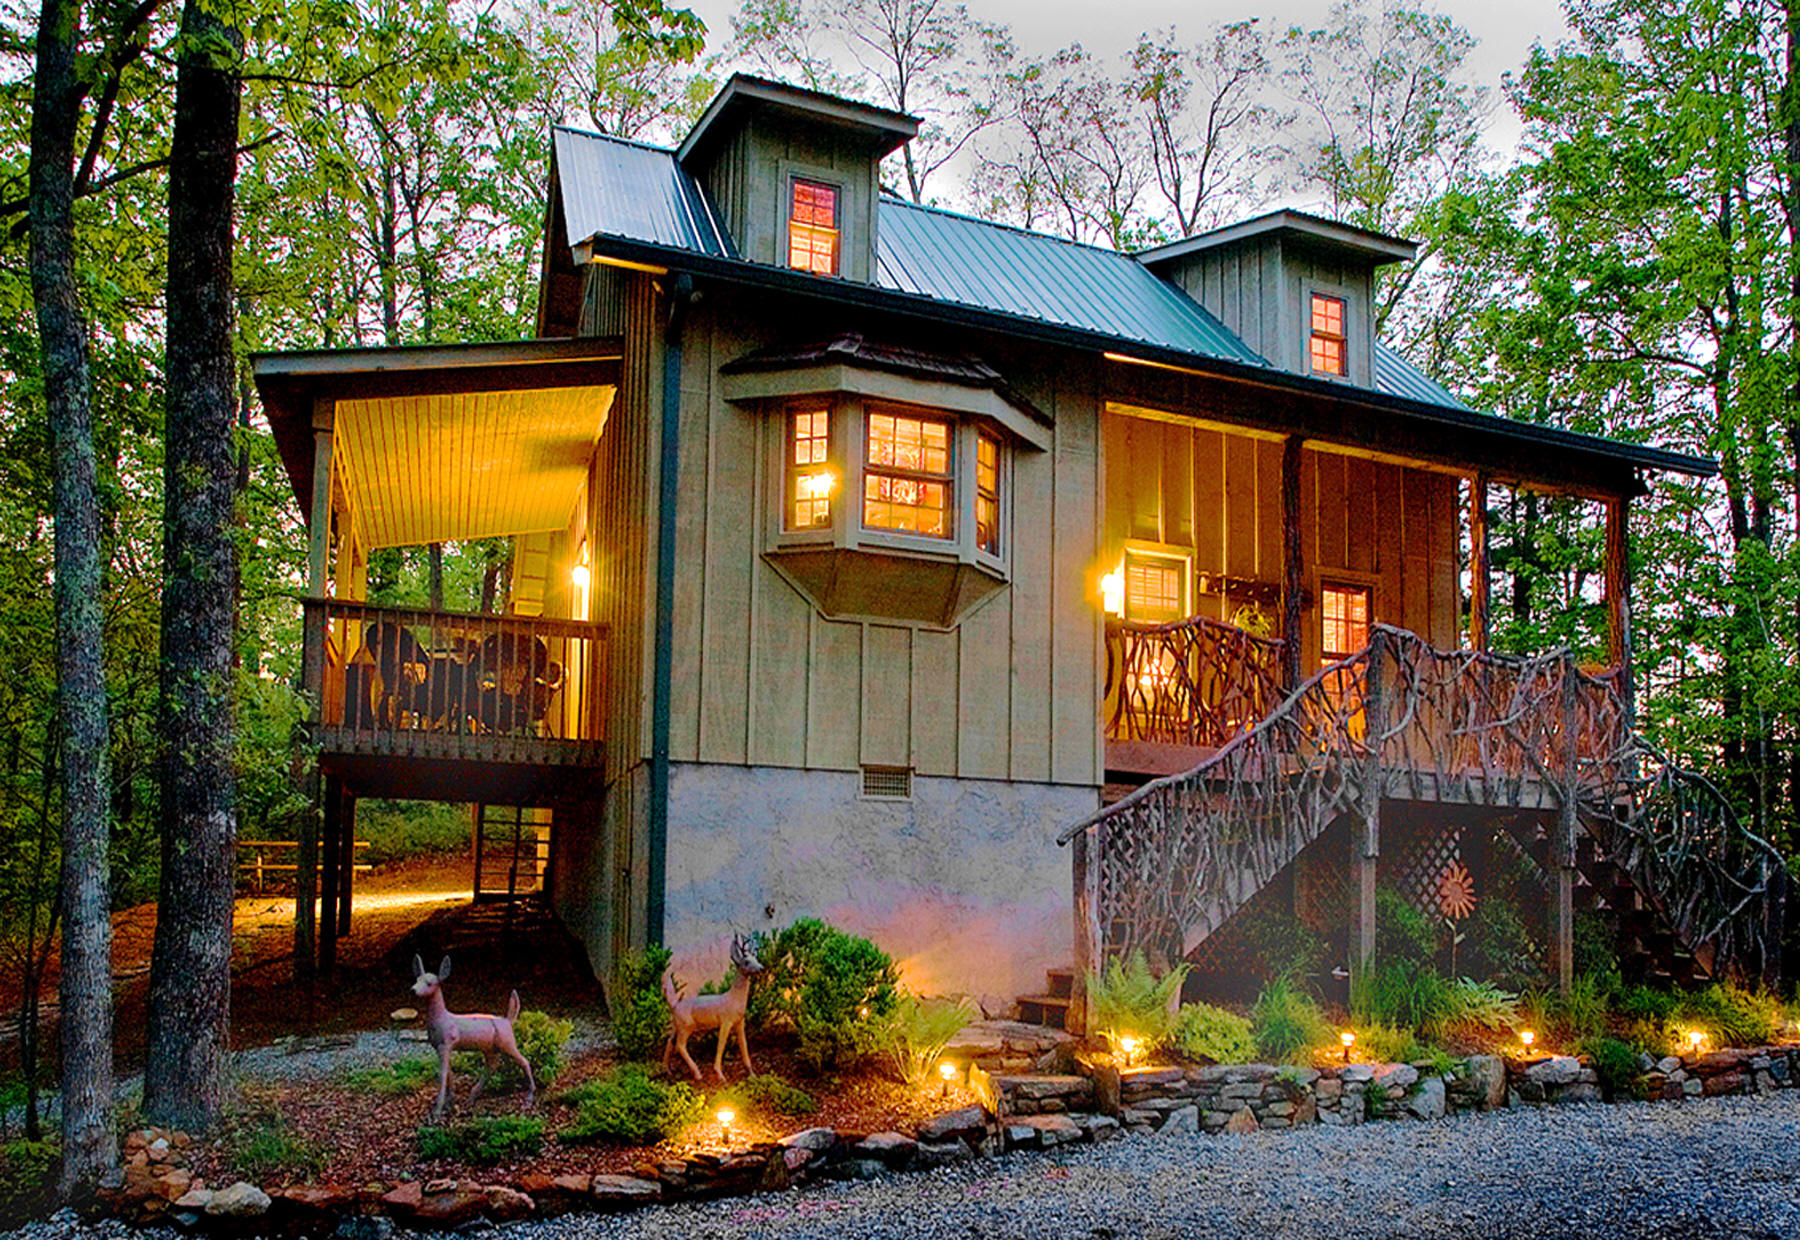 Lake Toxaway cabin rentals on 7 acres with trails